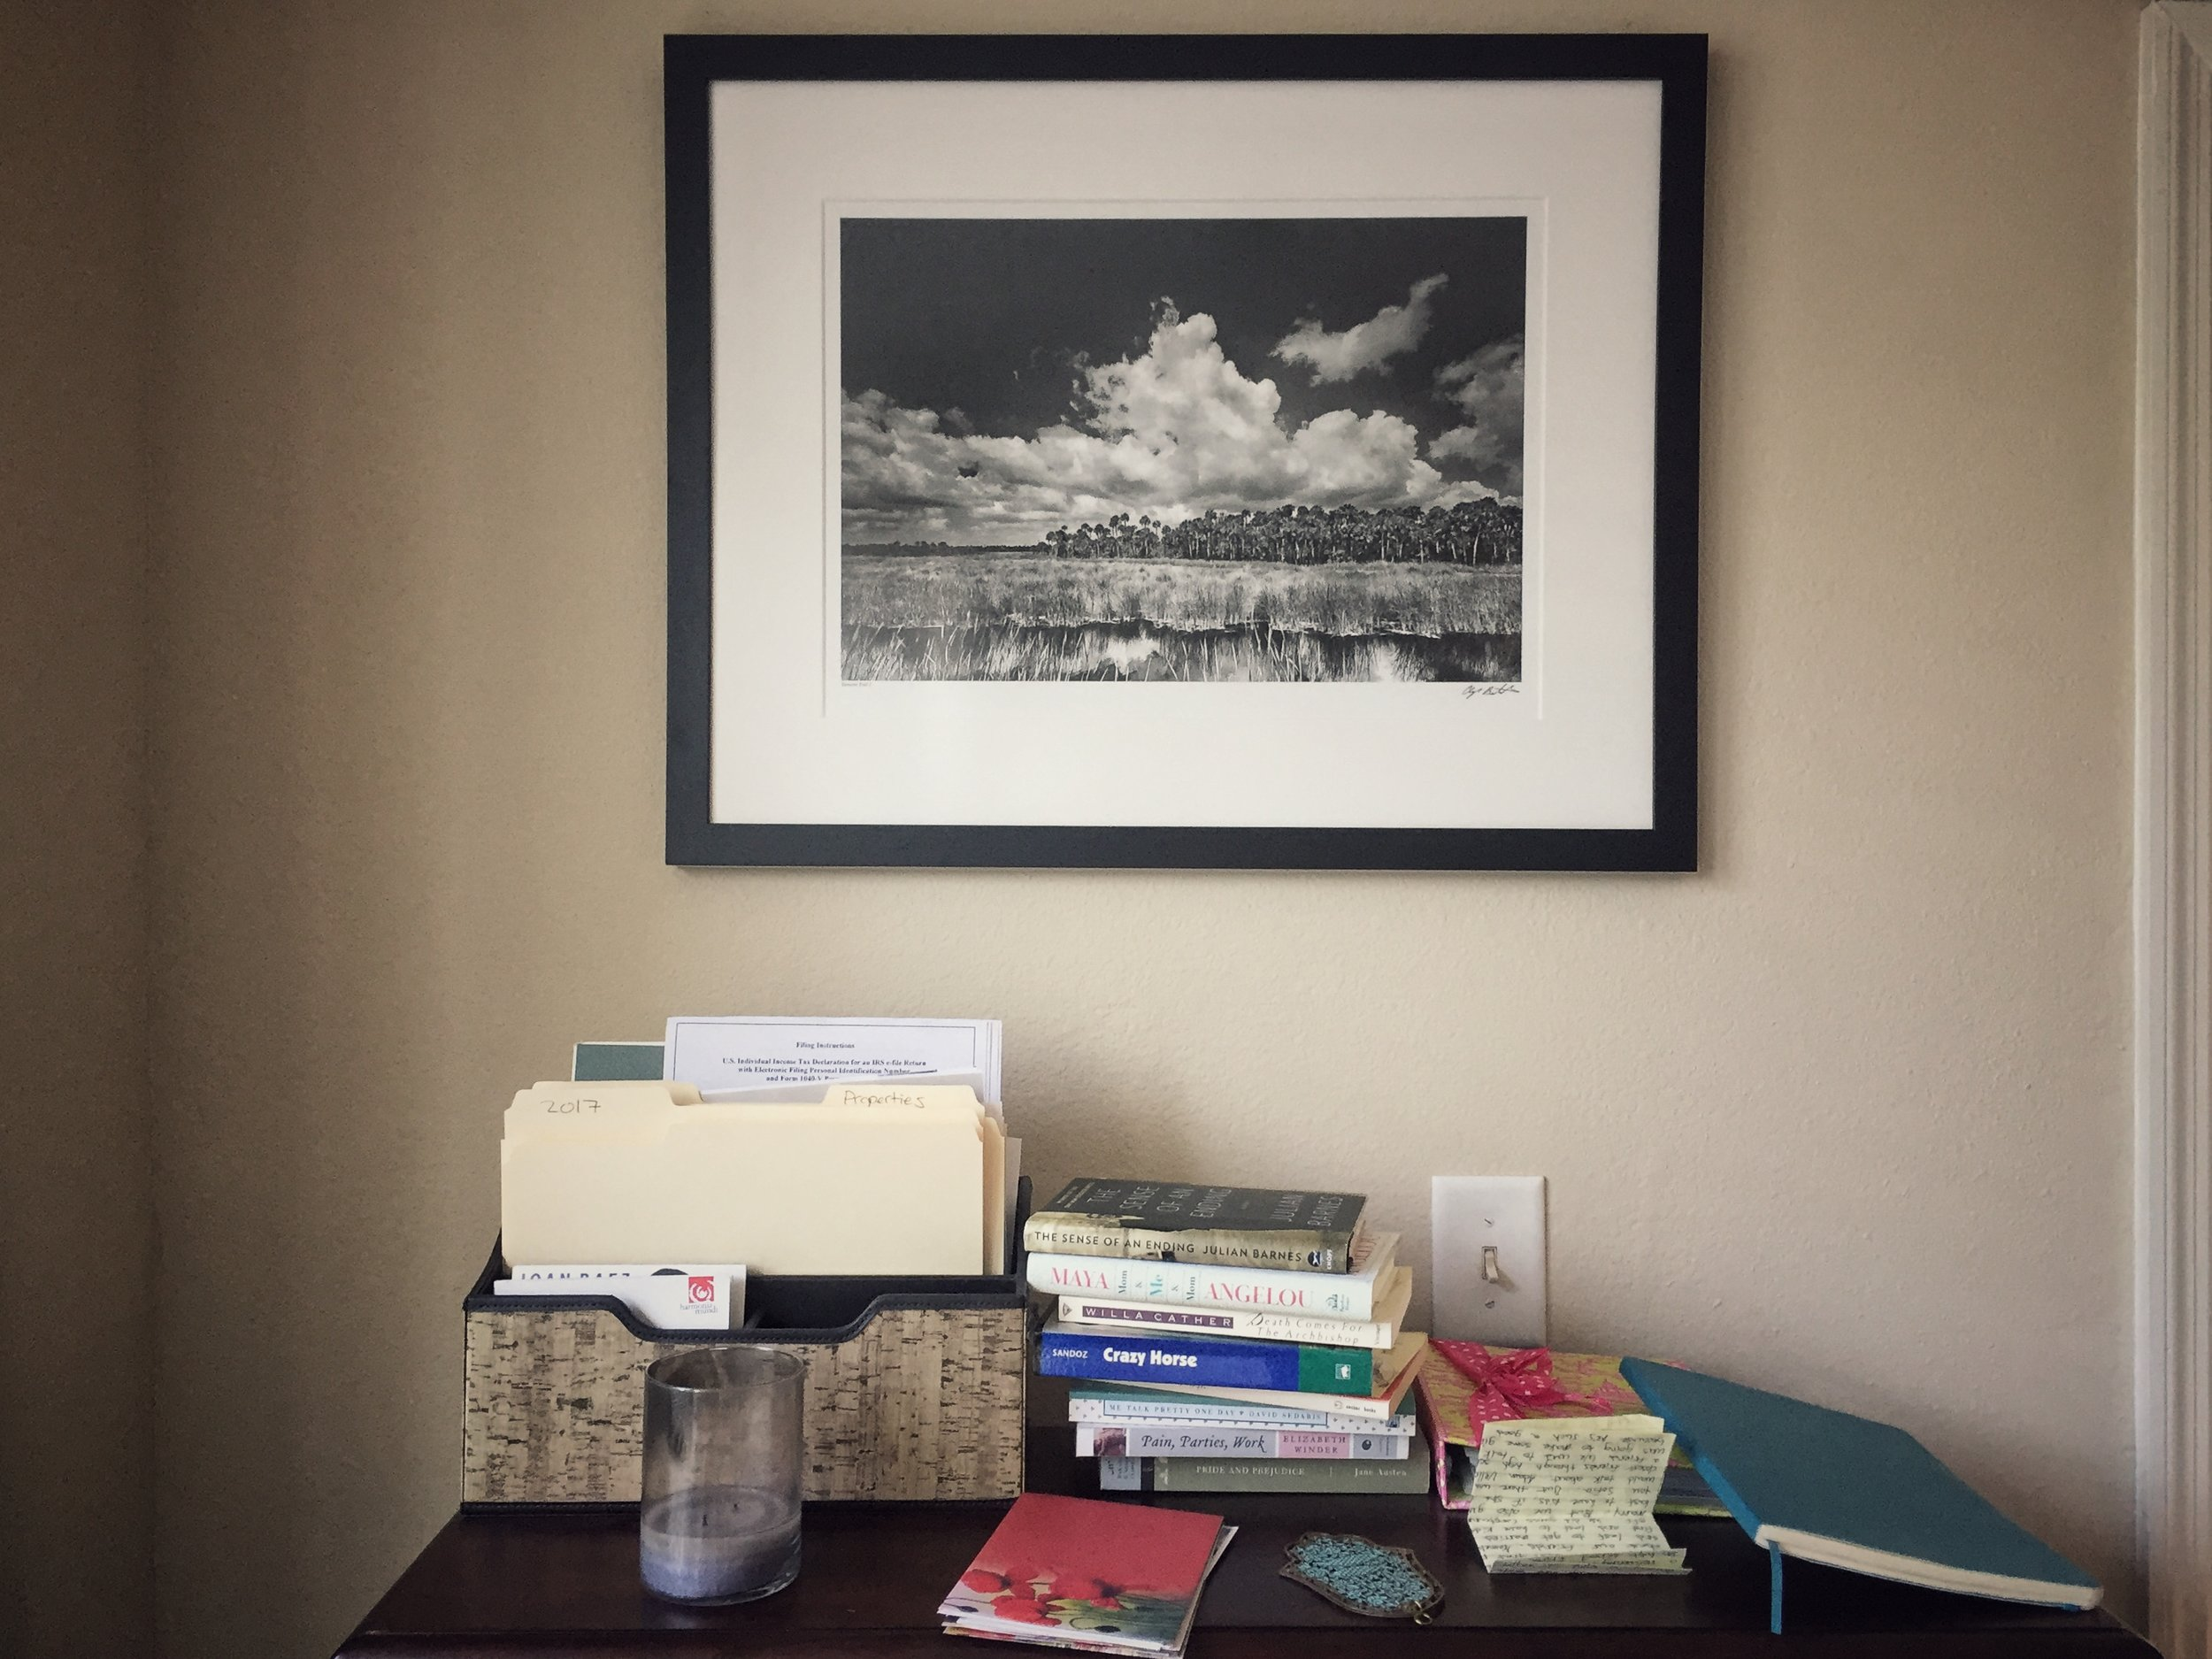 My Clyde Butcher print above my (messy) desktop.